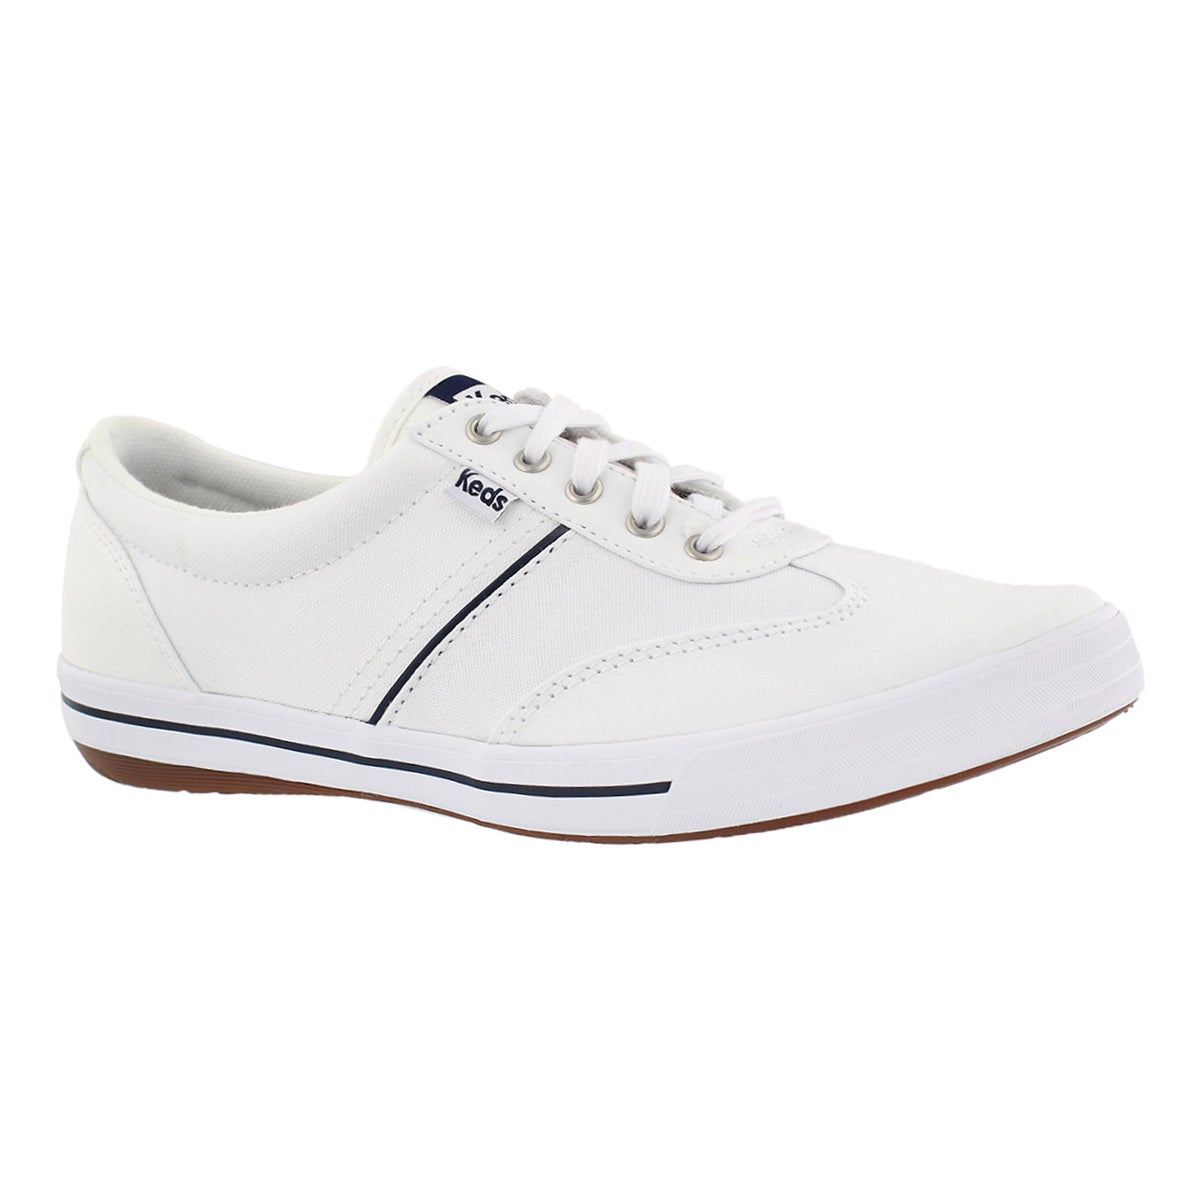 Women's CRAZE II white lace up sneakers